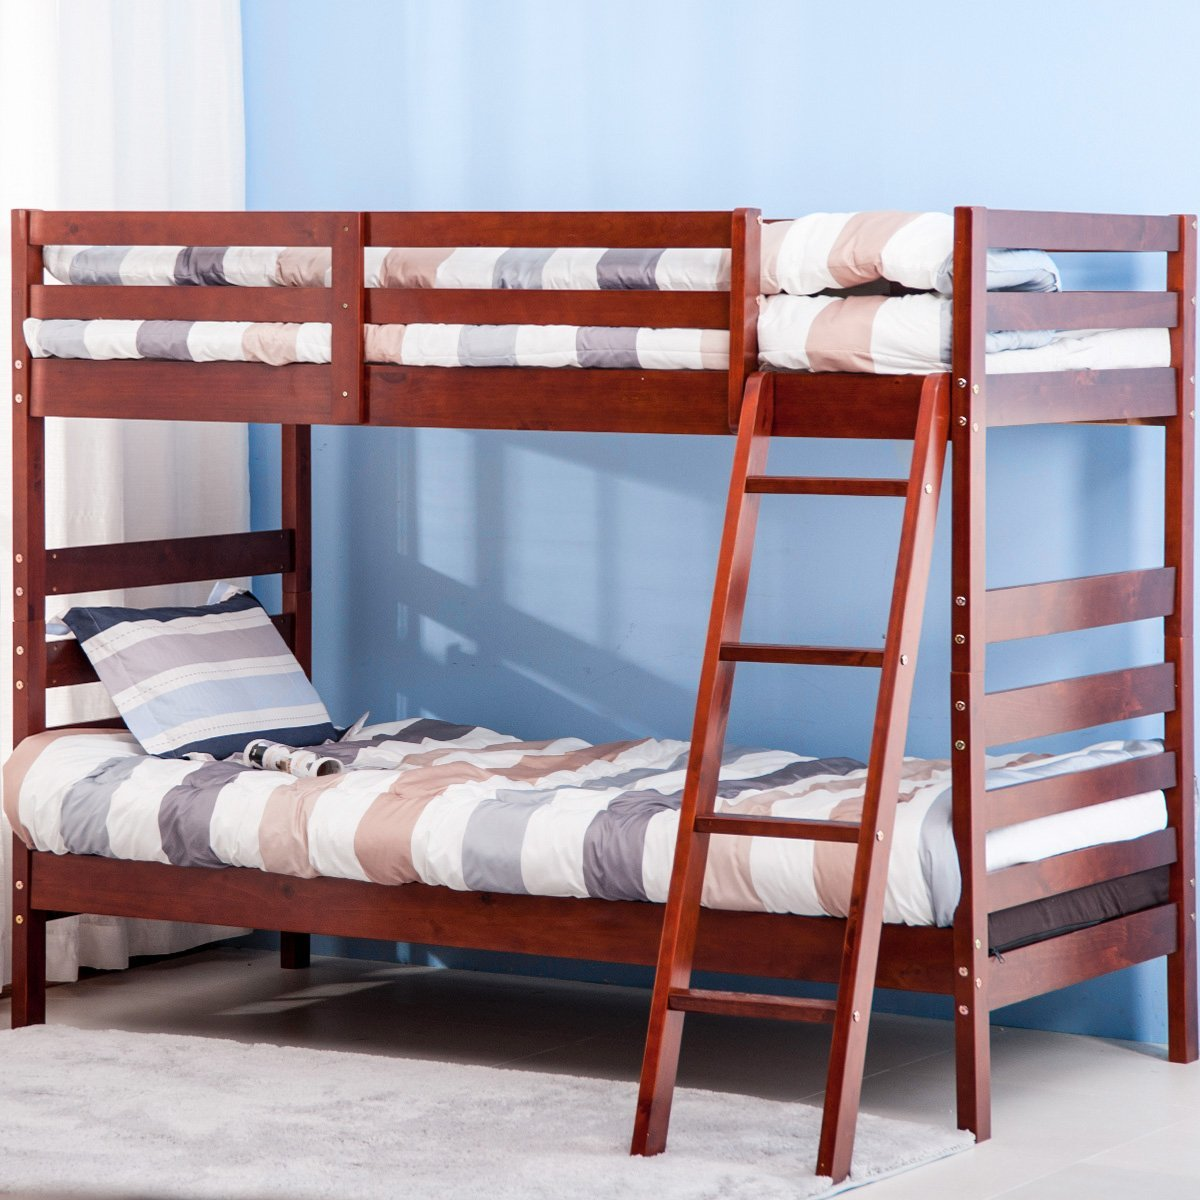 Bunk beds under 200 luxury cheap bunk beds under 200 69 for Cheap twin beds